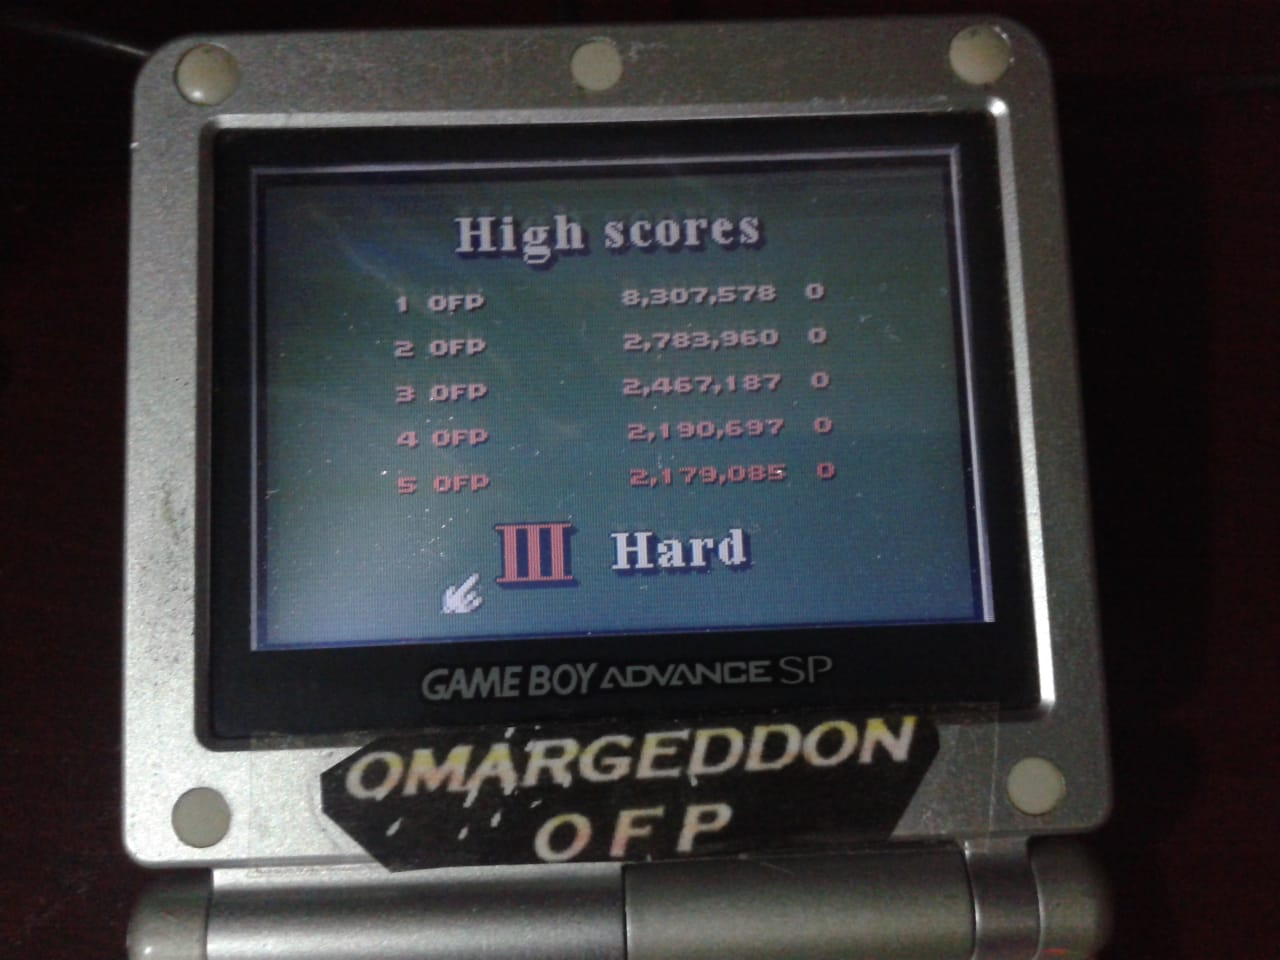 omargeddon: 3D Ultra Pinball Thrillride: Hard (Game Boy Color) 8,307,578 points on 2018-08-05 03:12:44